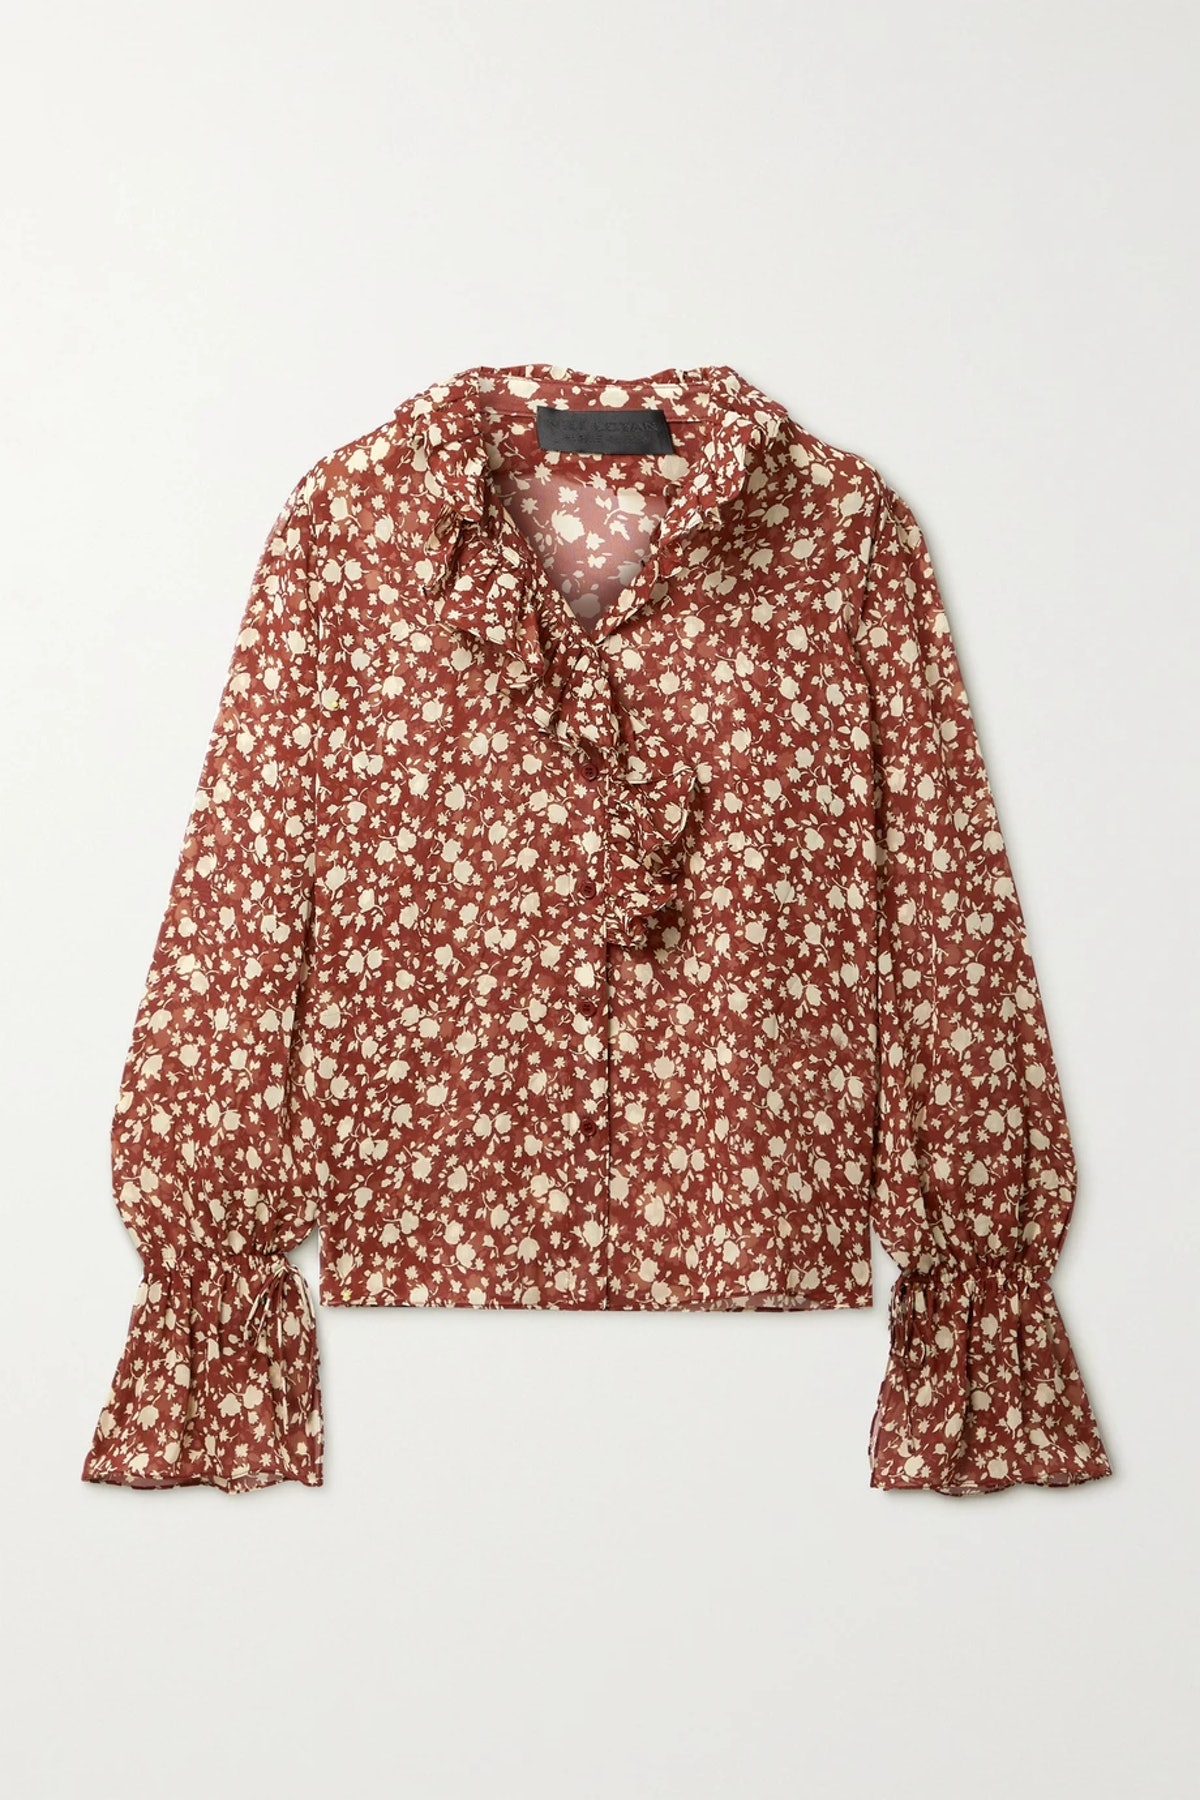 Cecily ruffled floral-print silk-chiffon blouse from Nili Lotan, available to shop on Net-a-Porter.